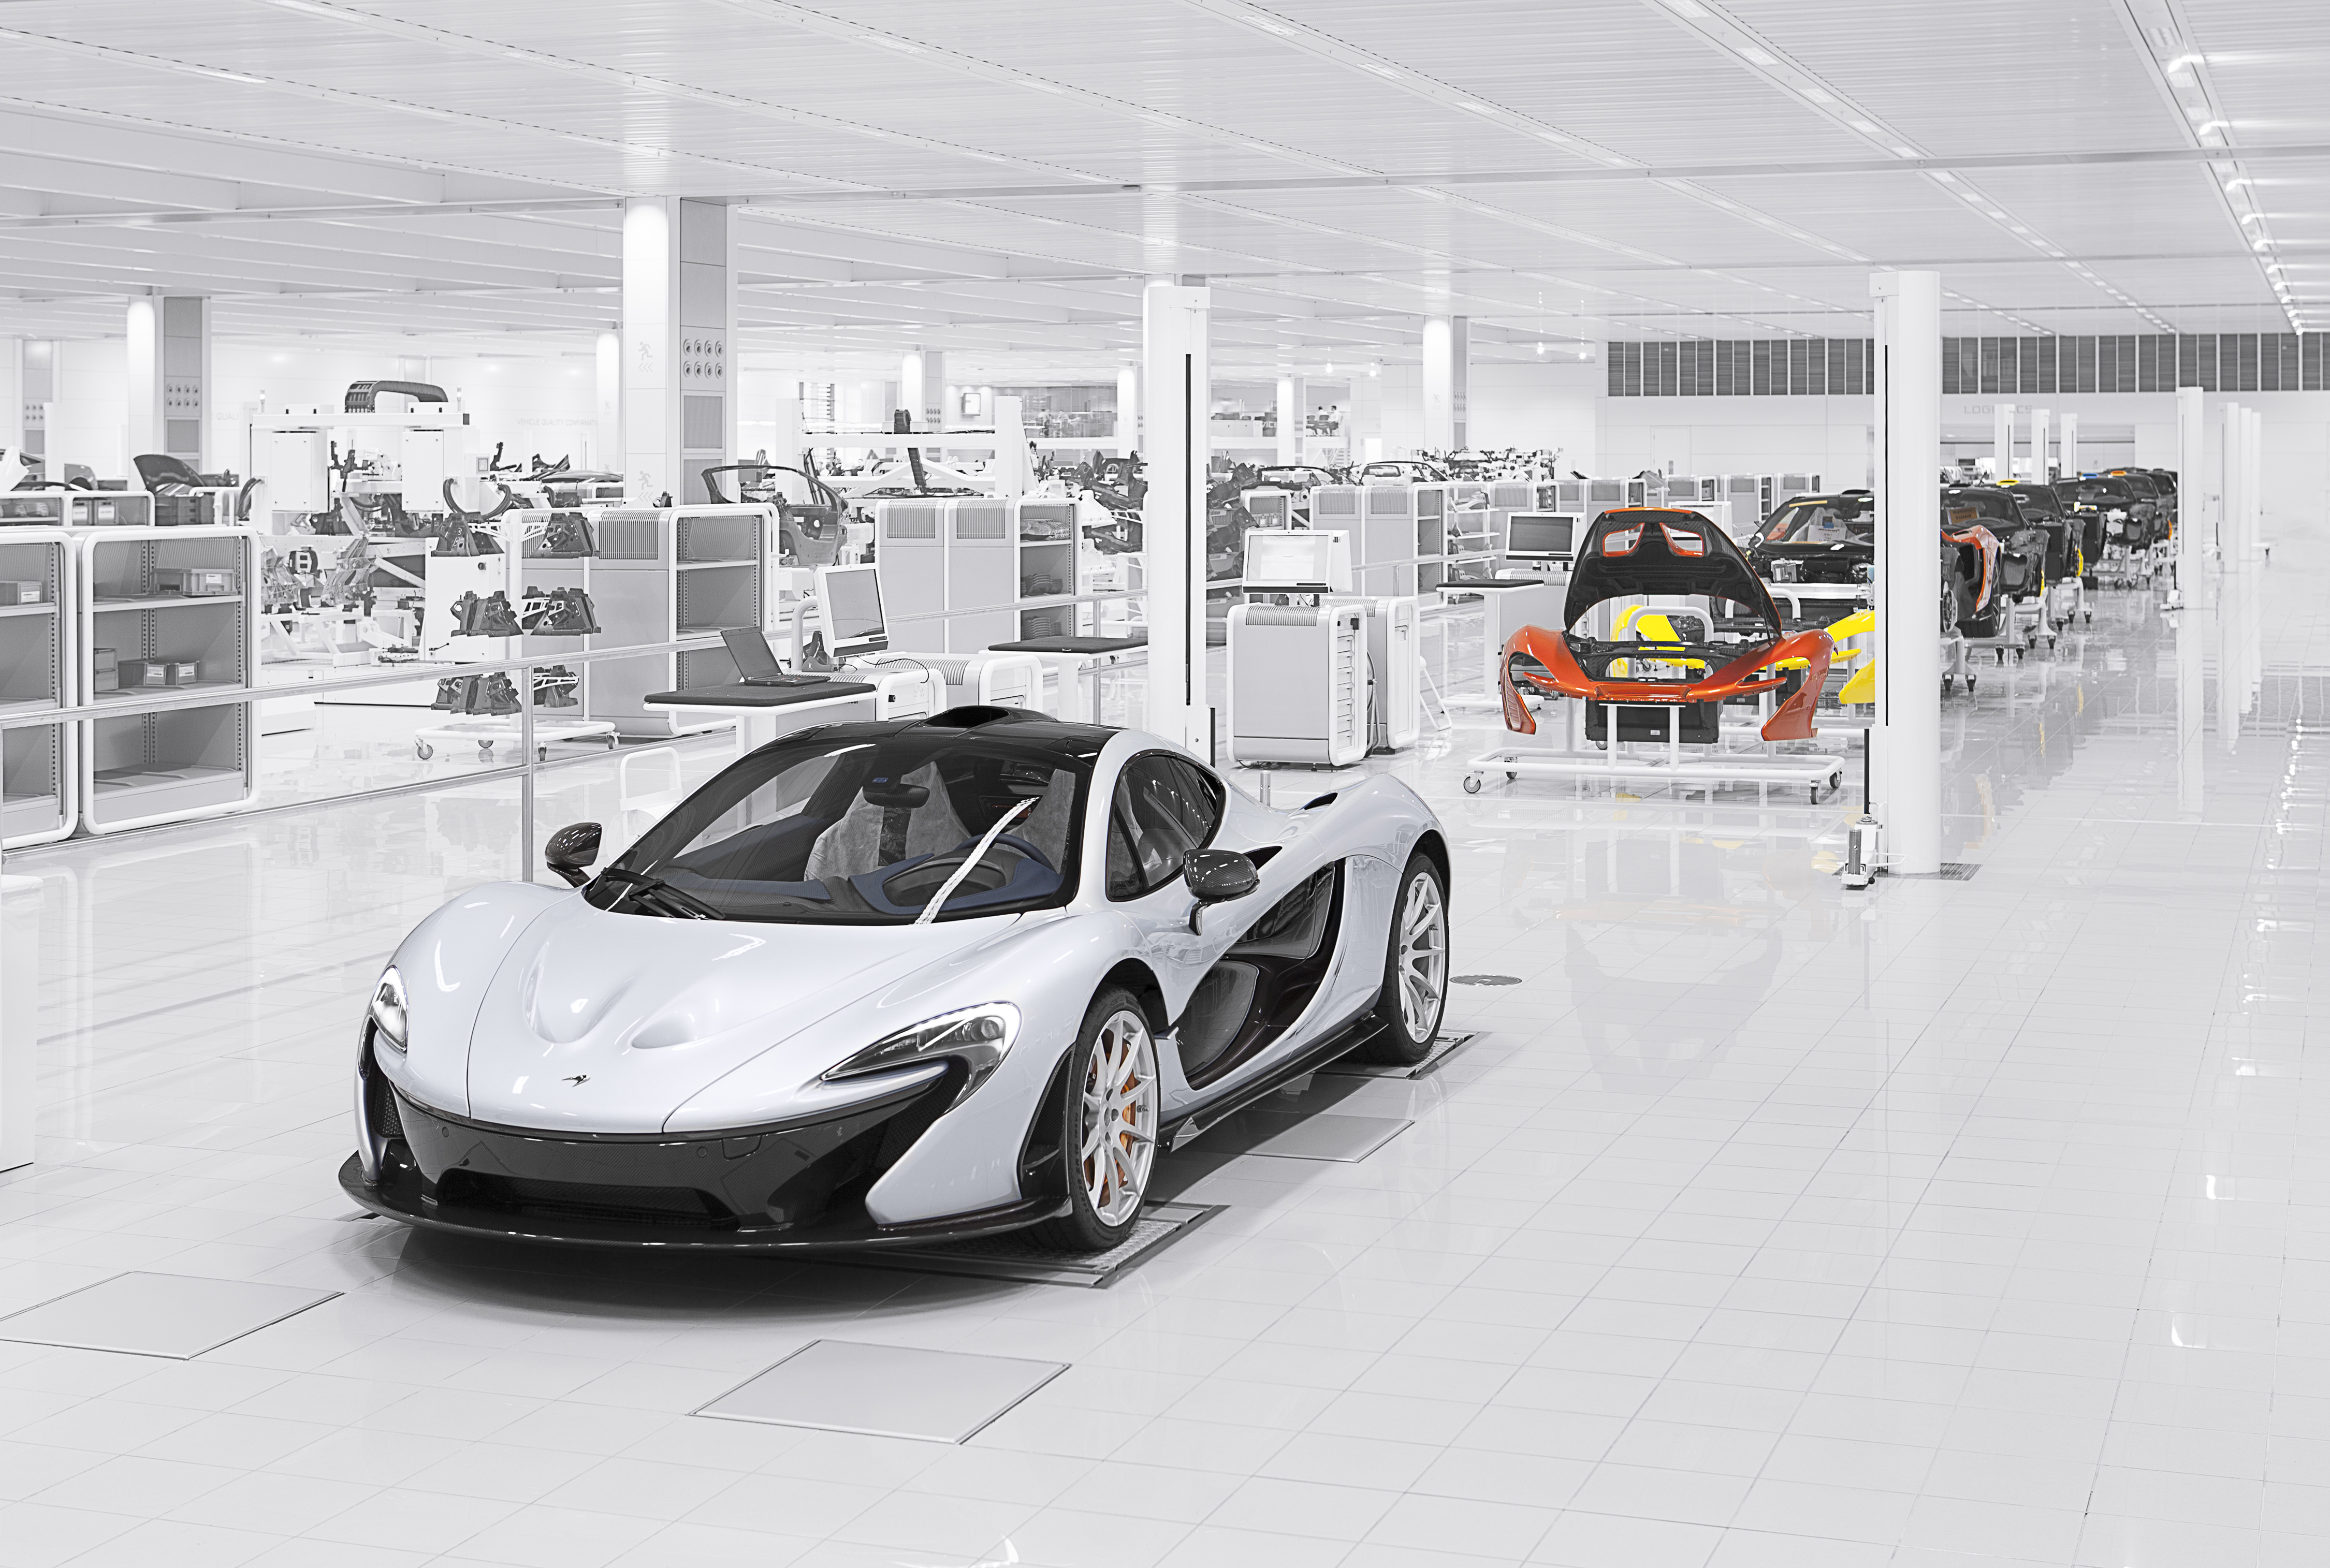 Performance figures for the McLaren P1™ confirmed as the first.